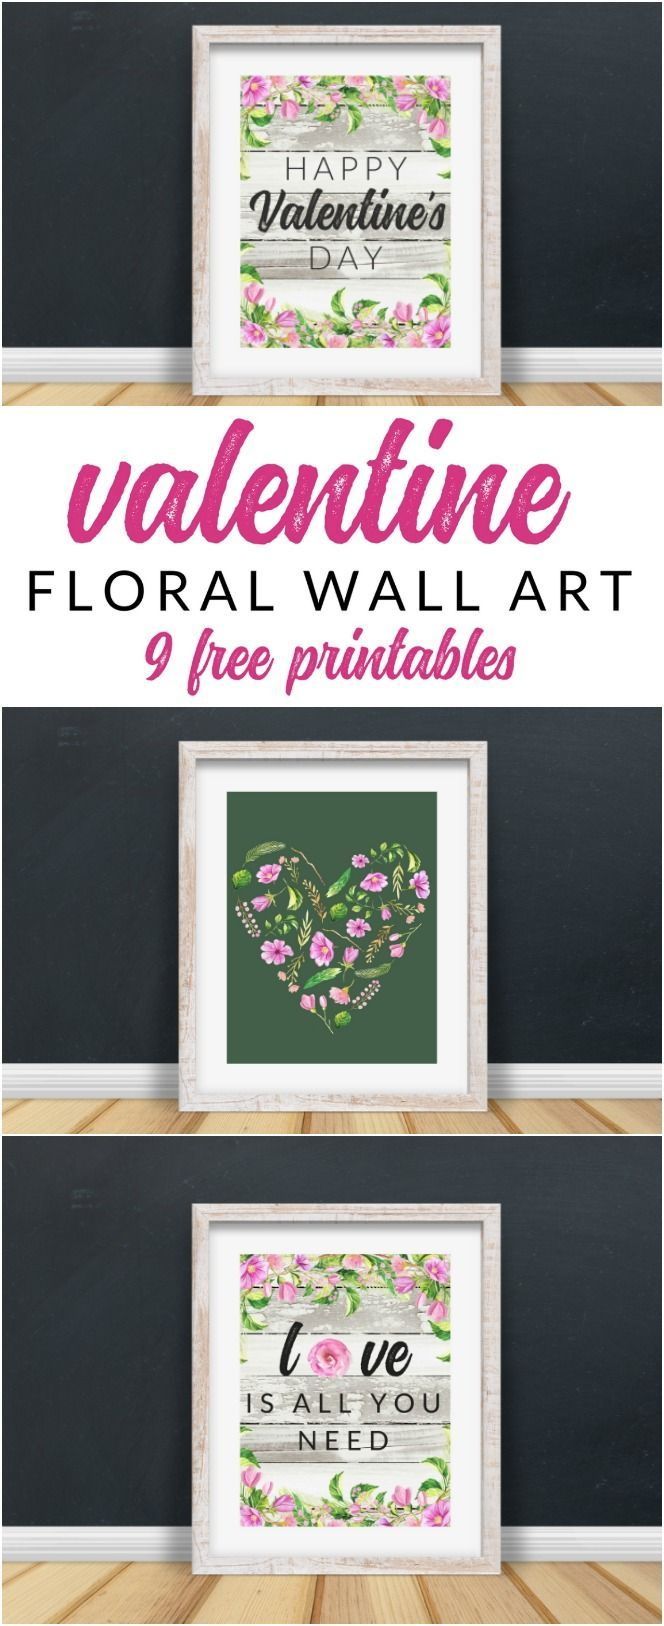 This FREE Floral Valentine Printable Pack is perfect for your holiday decor and gallery walls. 9 free farmhouse style Valentine printables that feel just a bit like spring. #valentinesday #valentineprintables #floralprintables #farmhousevalentine